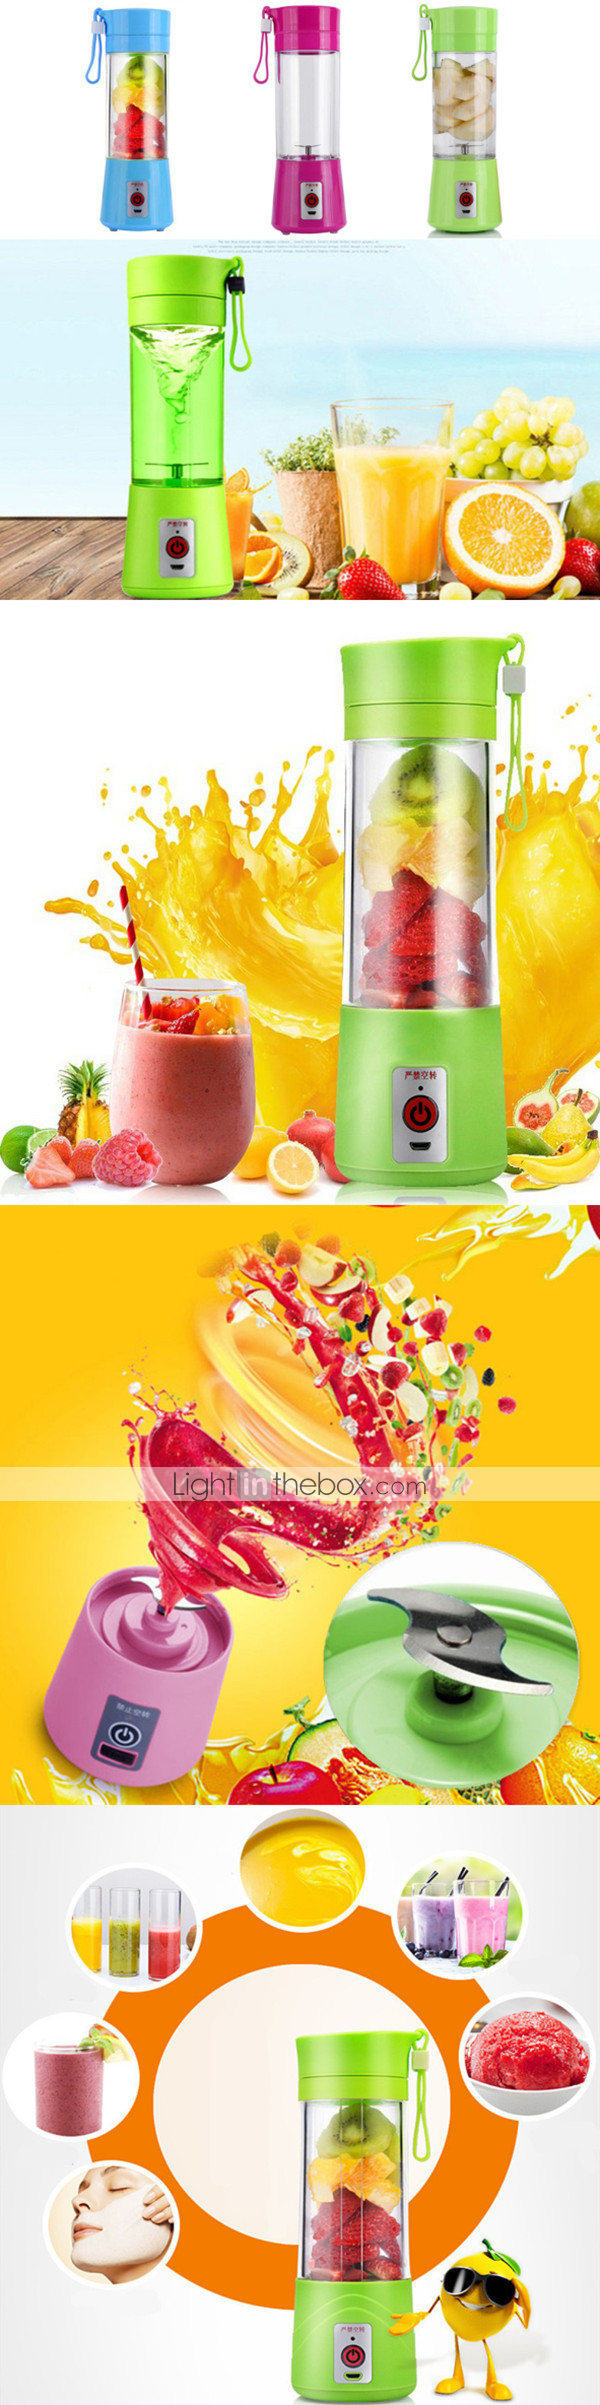 Portable Rechargeable Usb Electric Fruit Juicer Cup Bottle Lemon Battery Need Charge For 30 60 Mins Before Use It 1 When You Separate The From Basethe Forbid Light Turn Onthen Will Stop